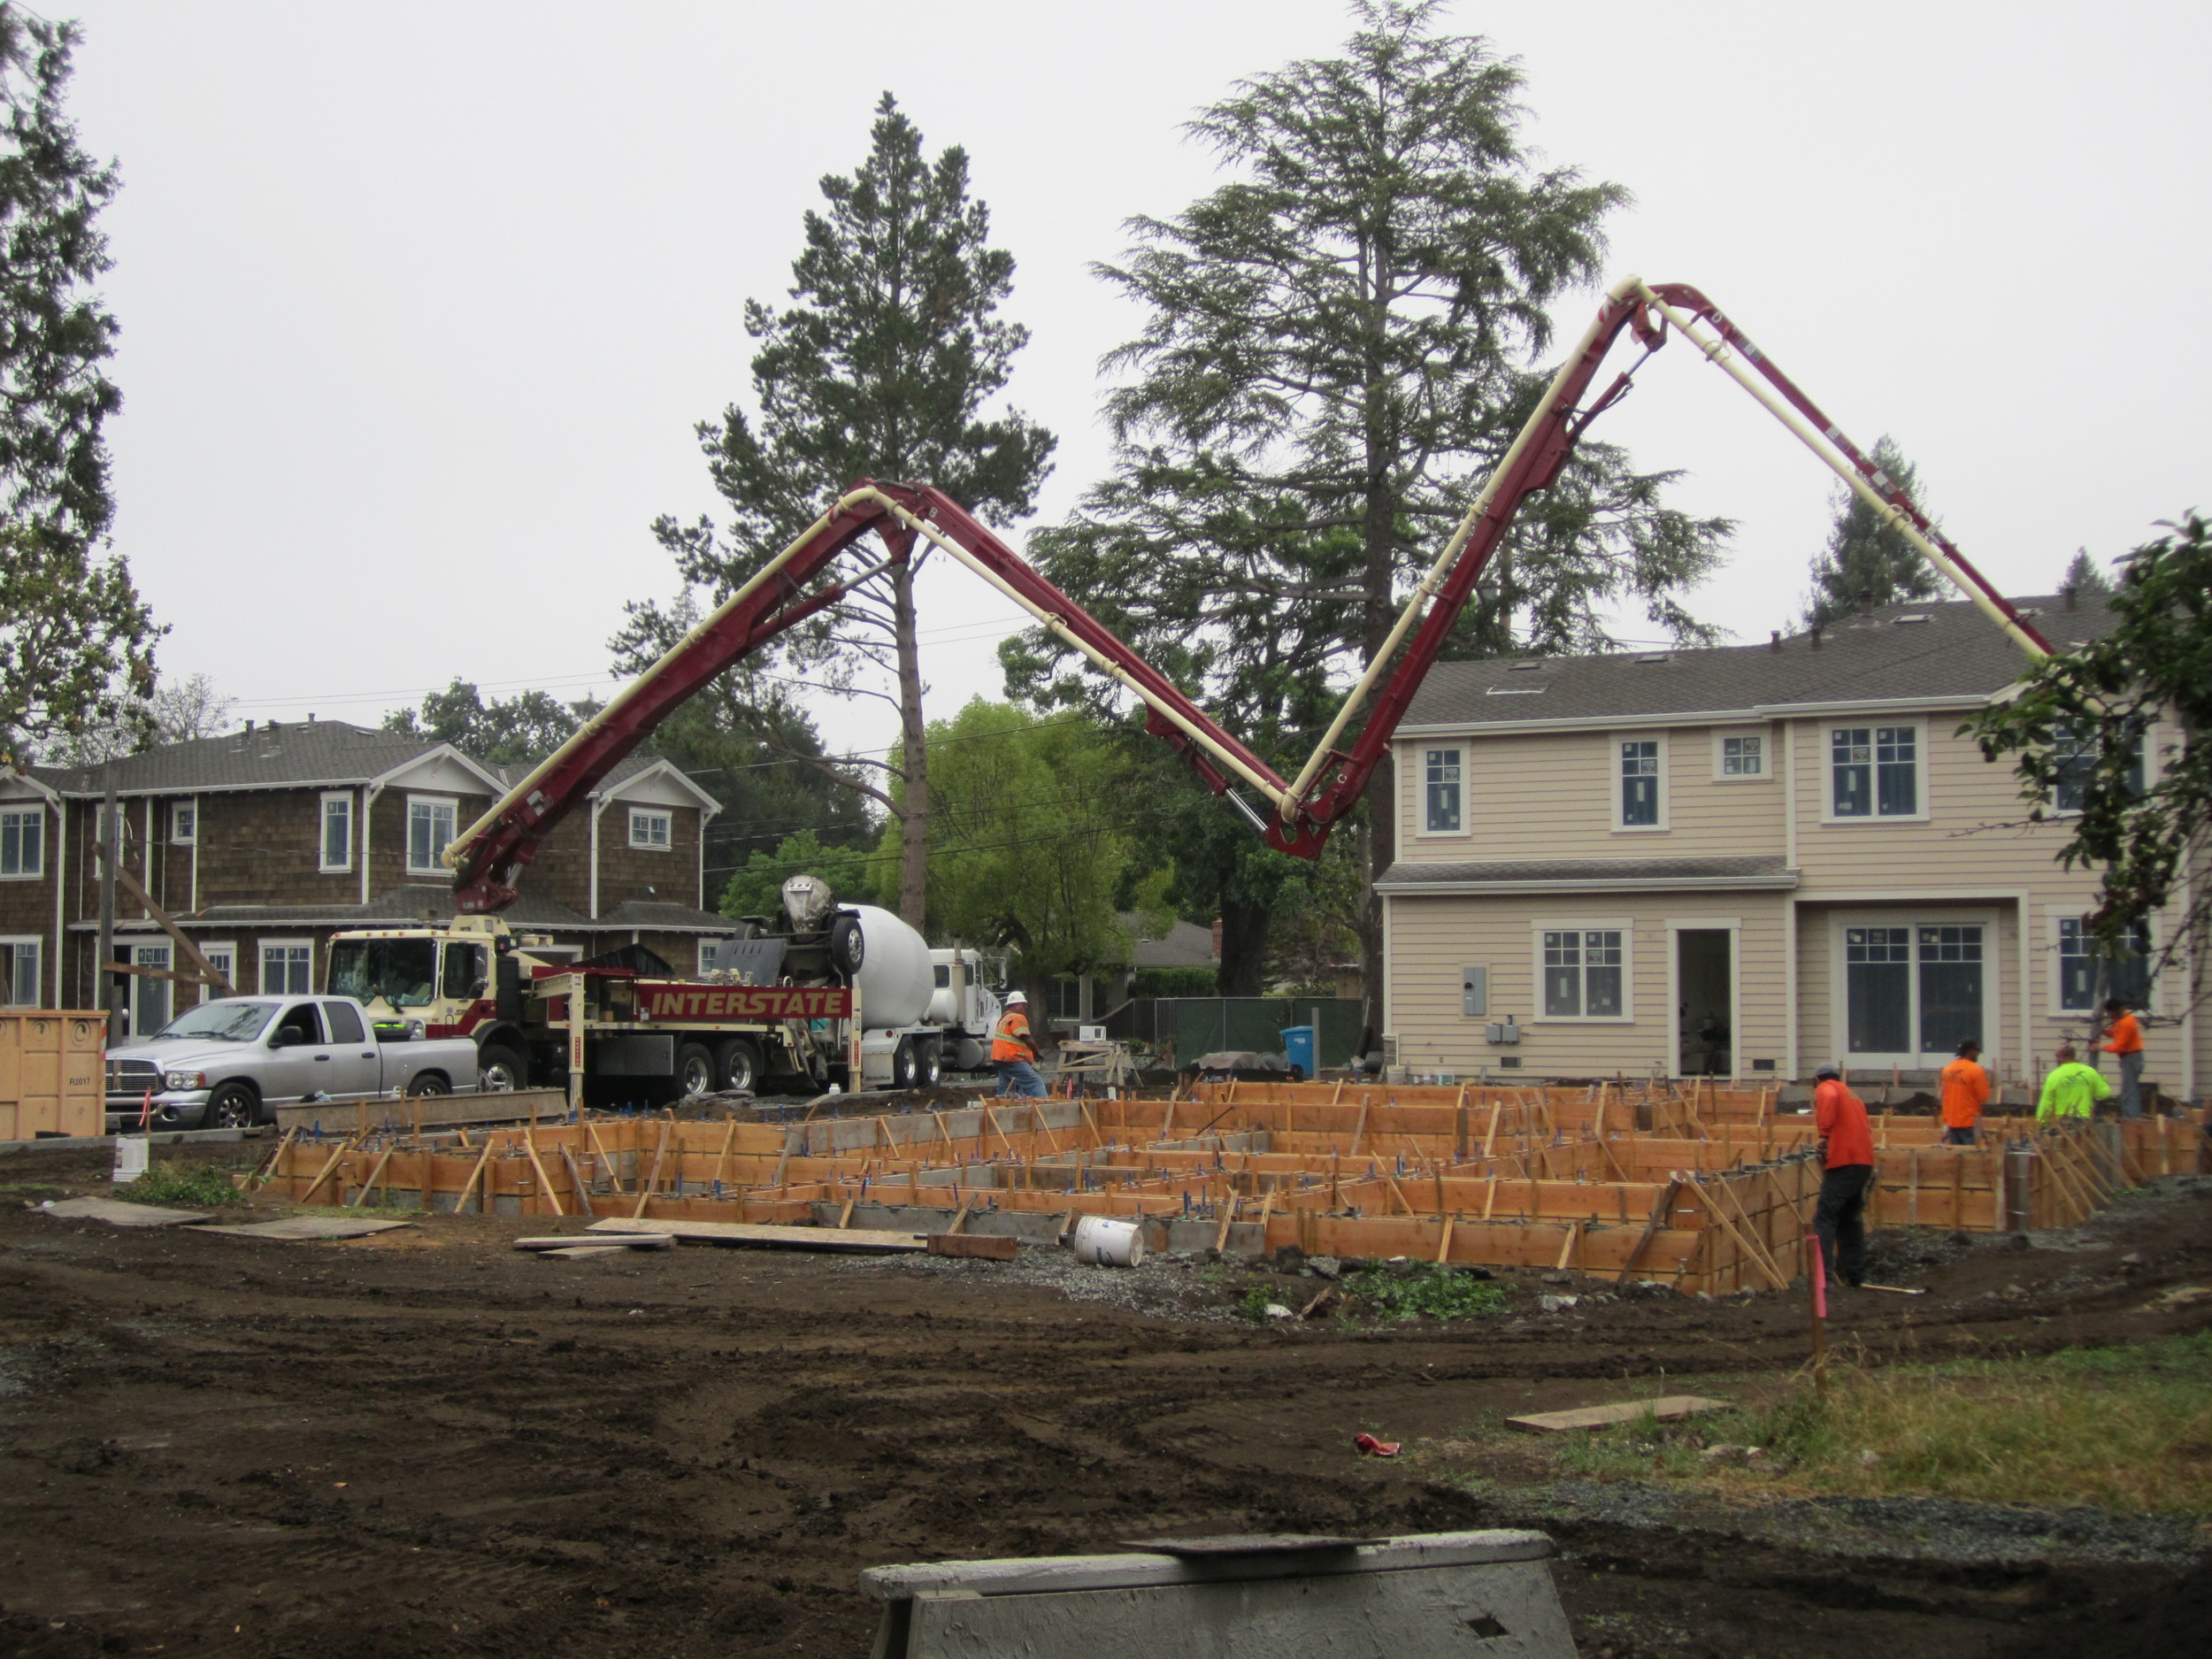 6 home development West Oakwood, Rossi Lane Redwood City Available 2015/2016